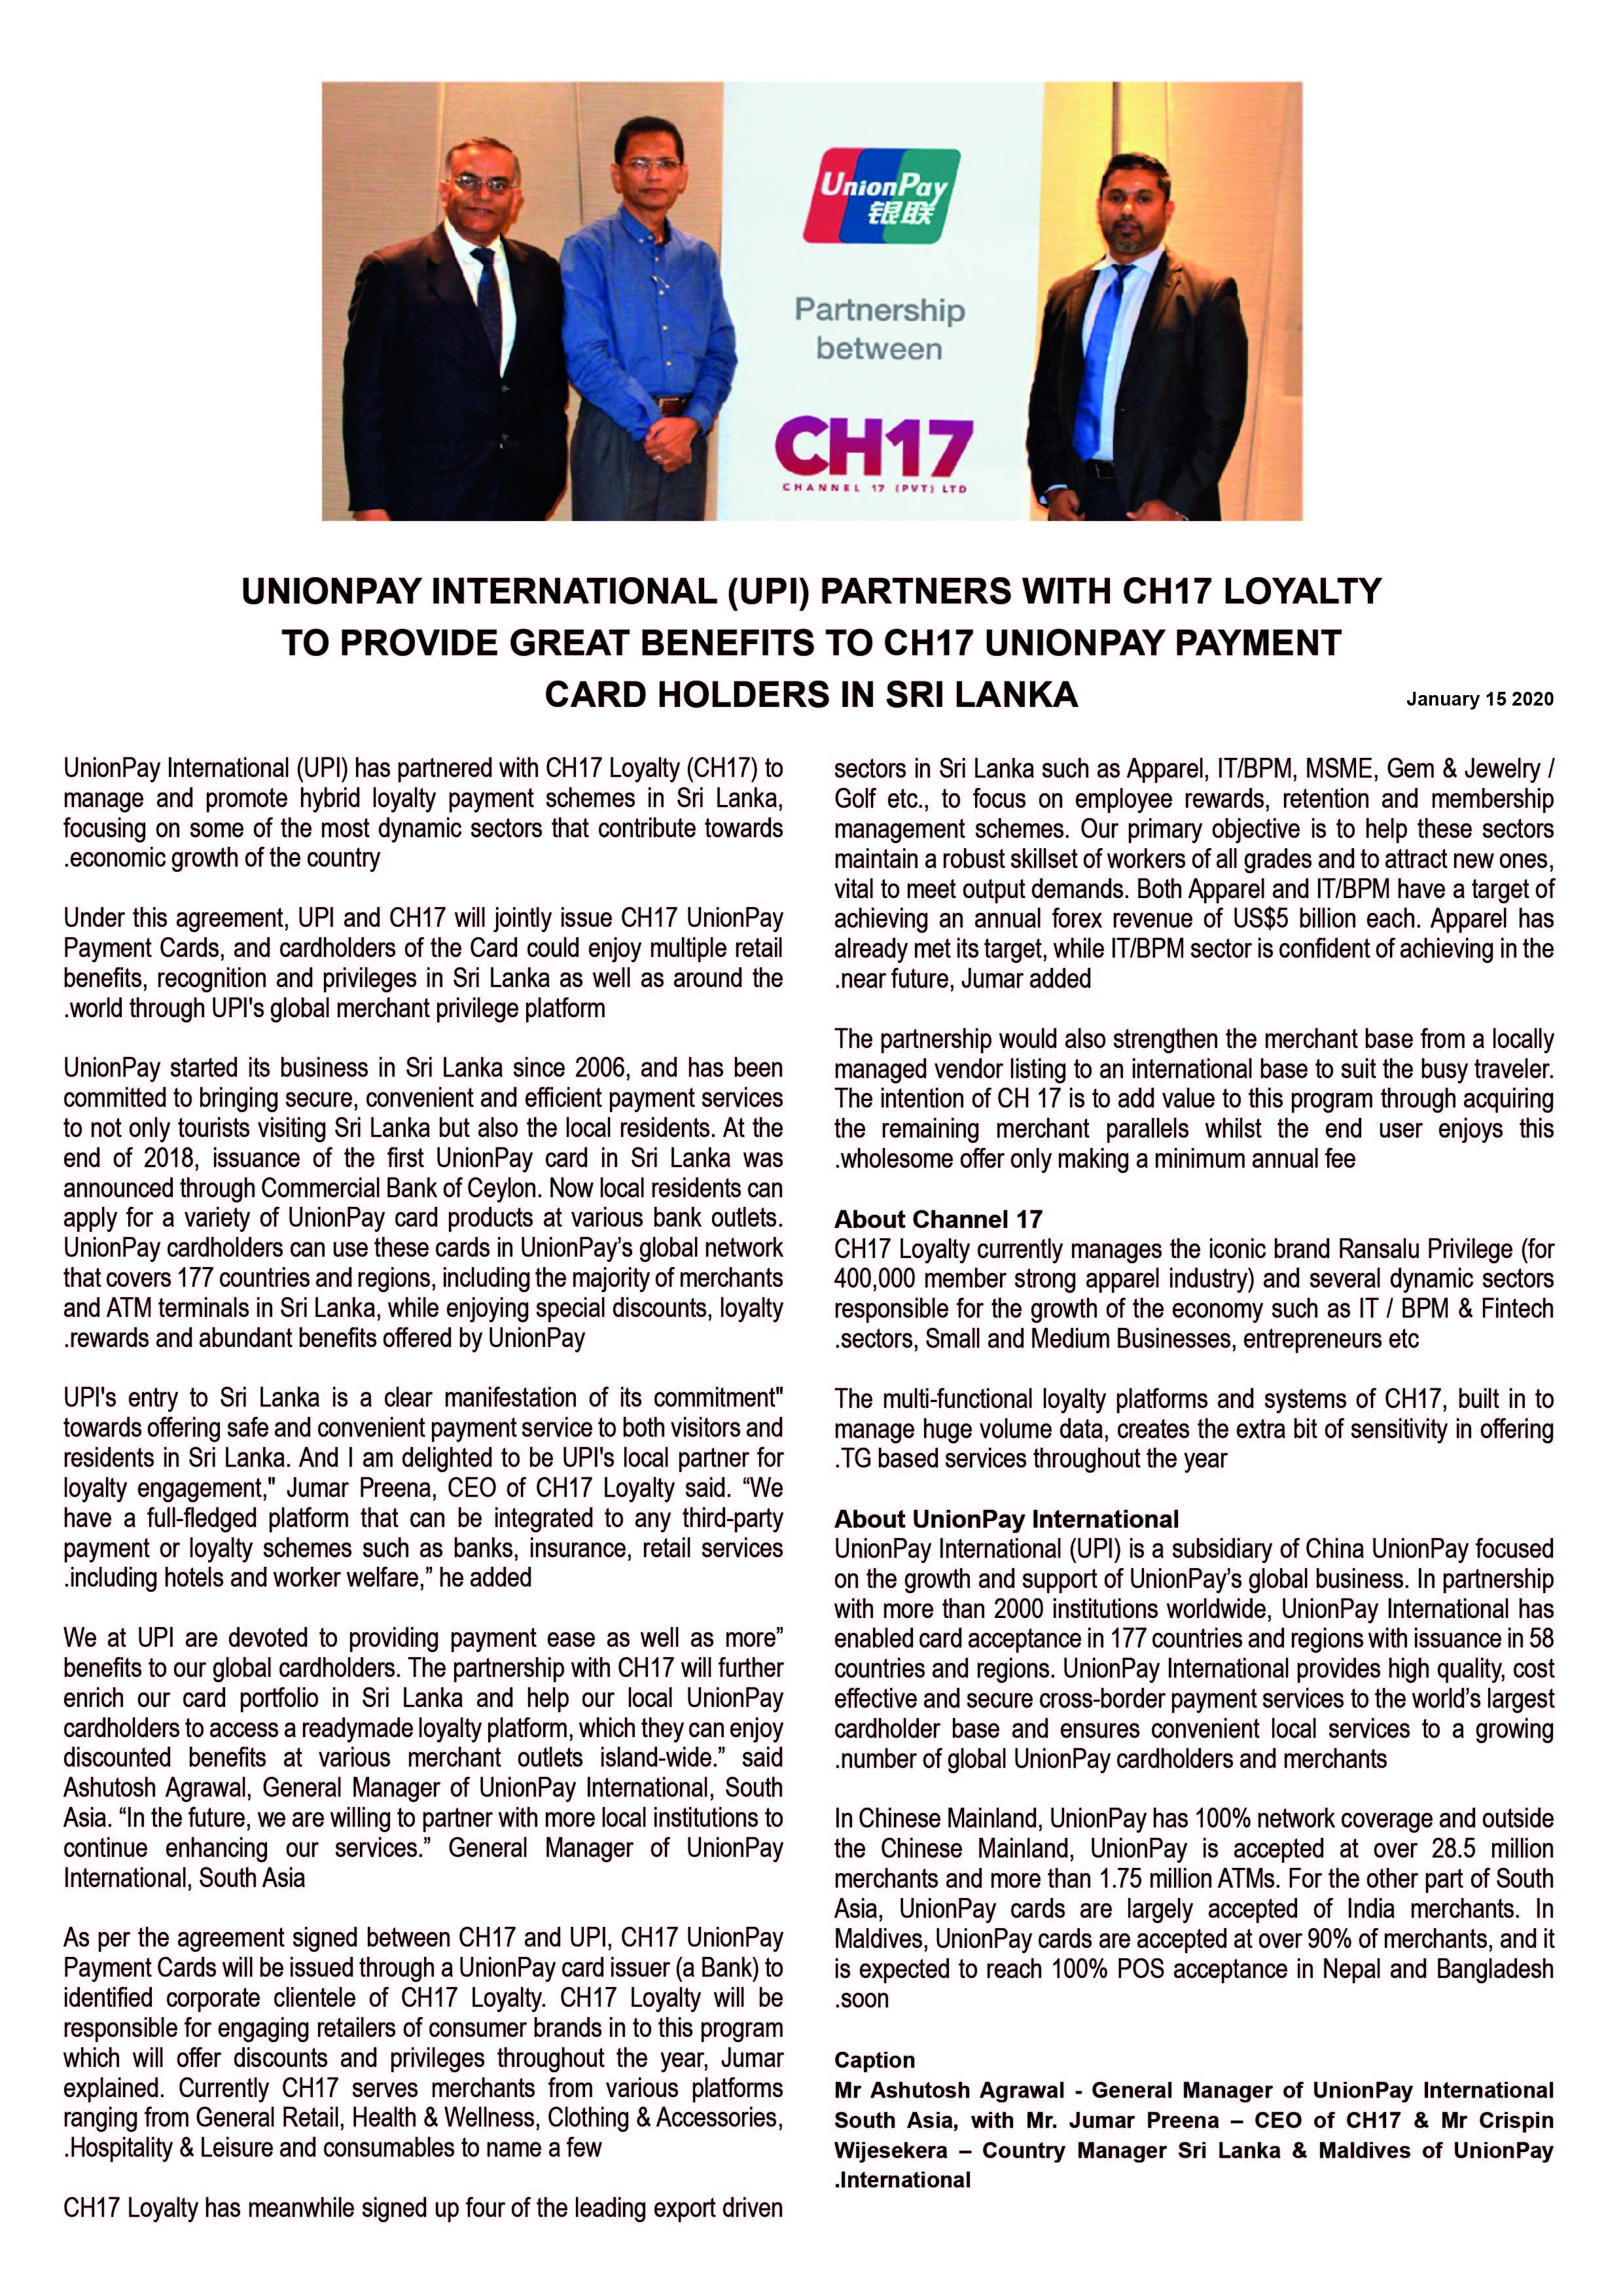 UNIONPAY International Partners with CH17